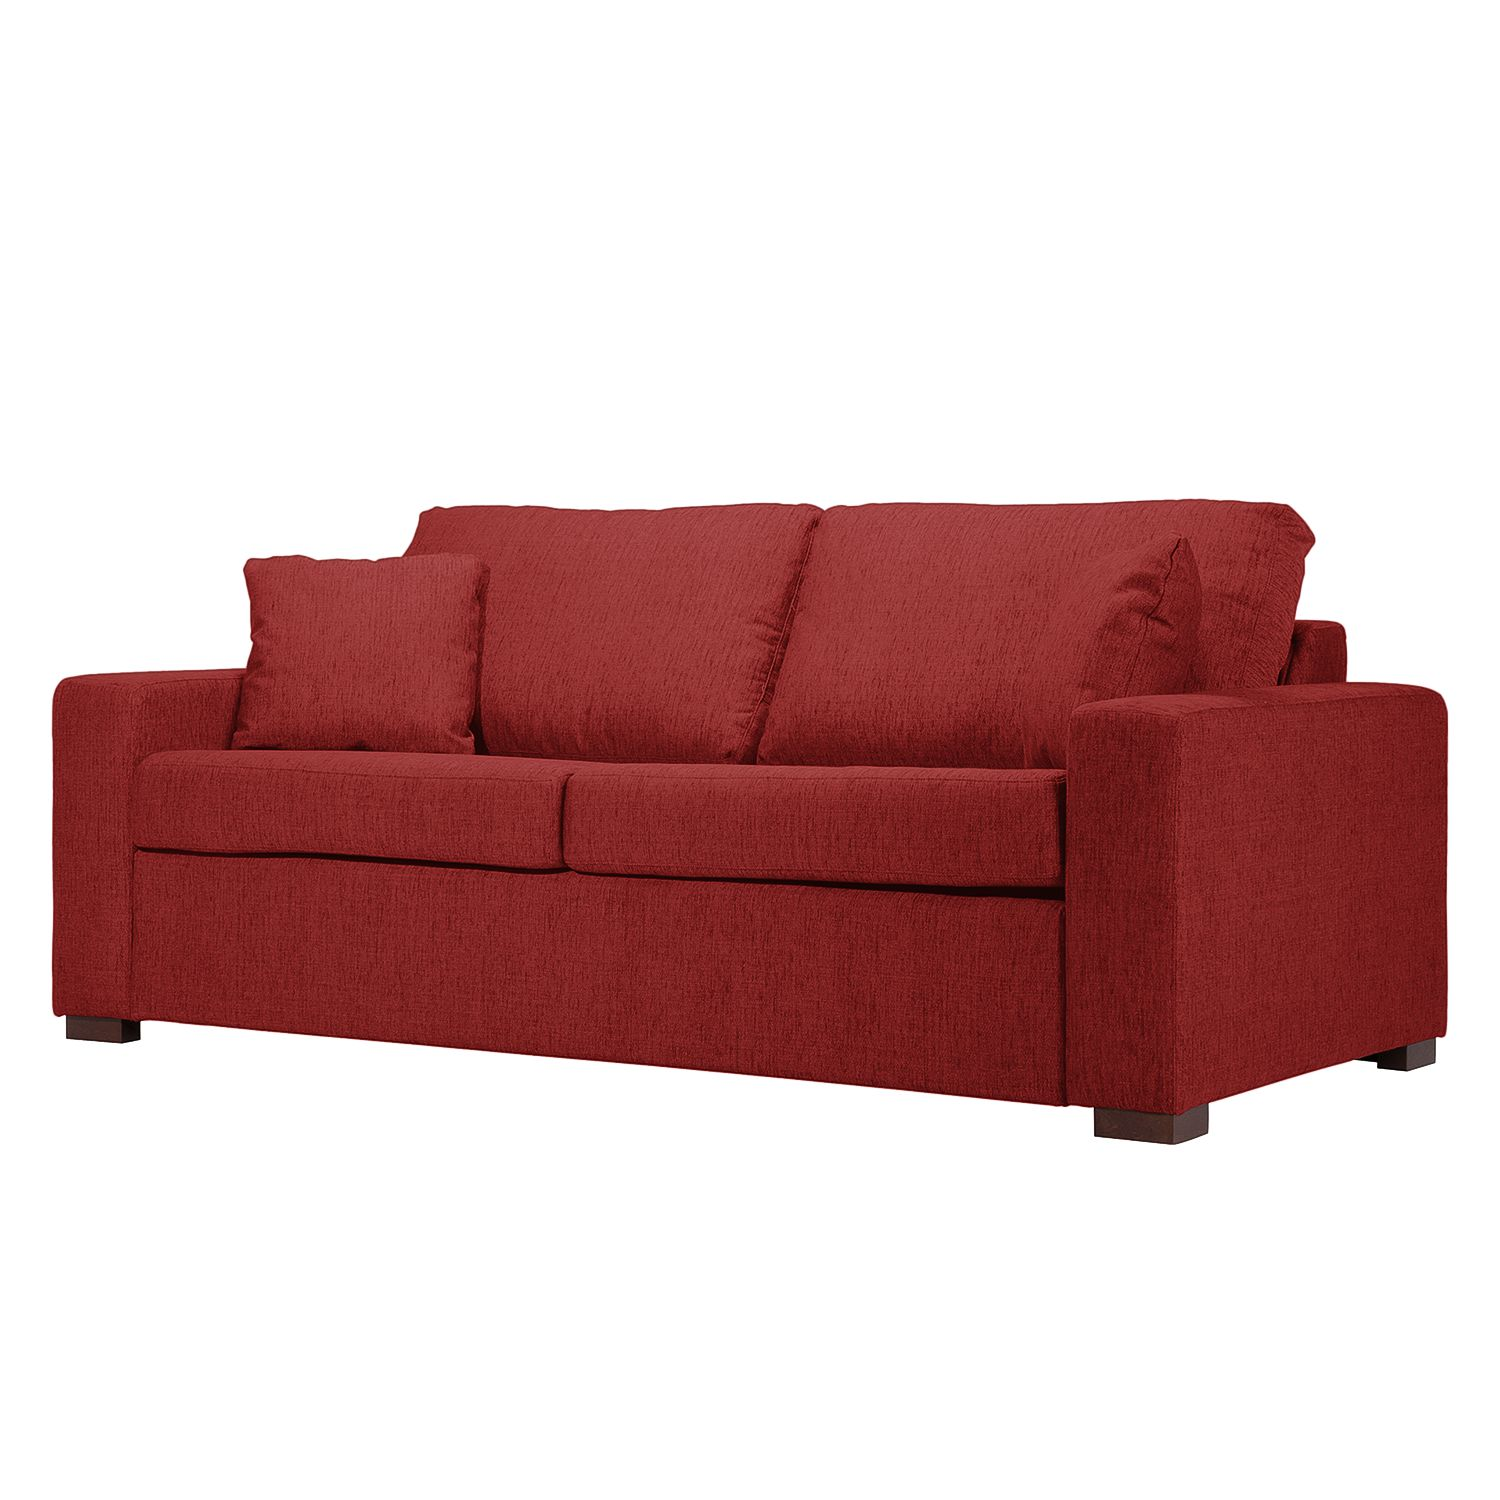 schlafsofa henning ii webstoff stoff kiara rot g nstig online kaufen. Black Bedroom Furniture Sets. Home Design Ideas